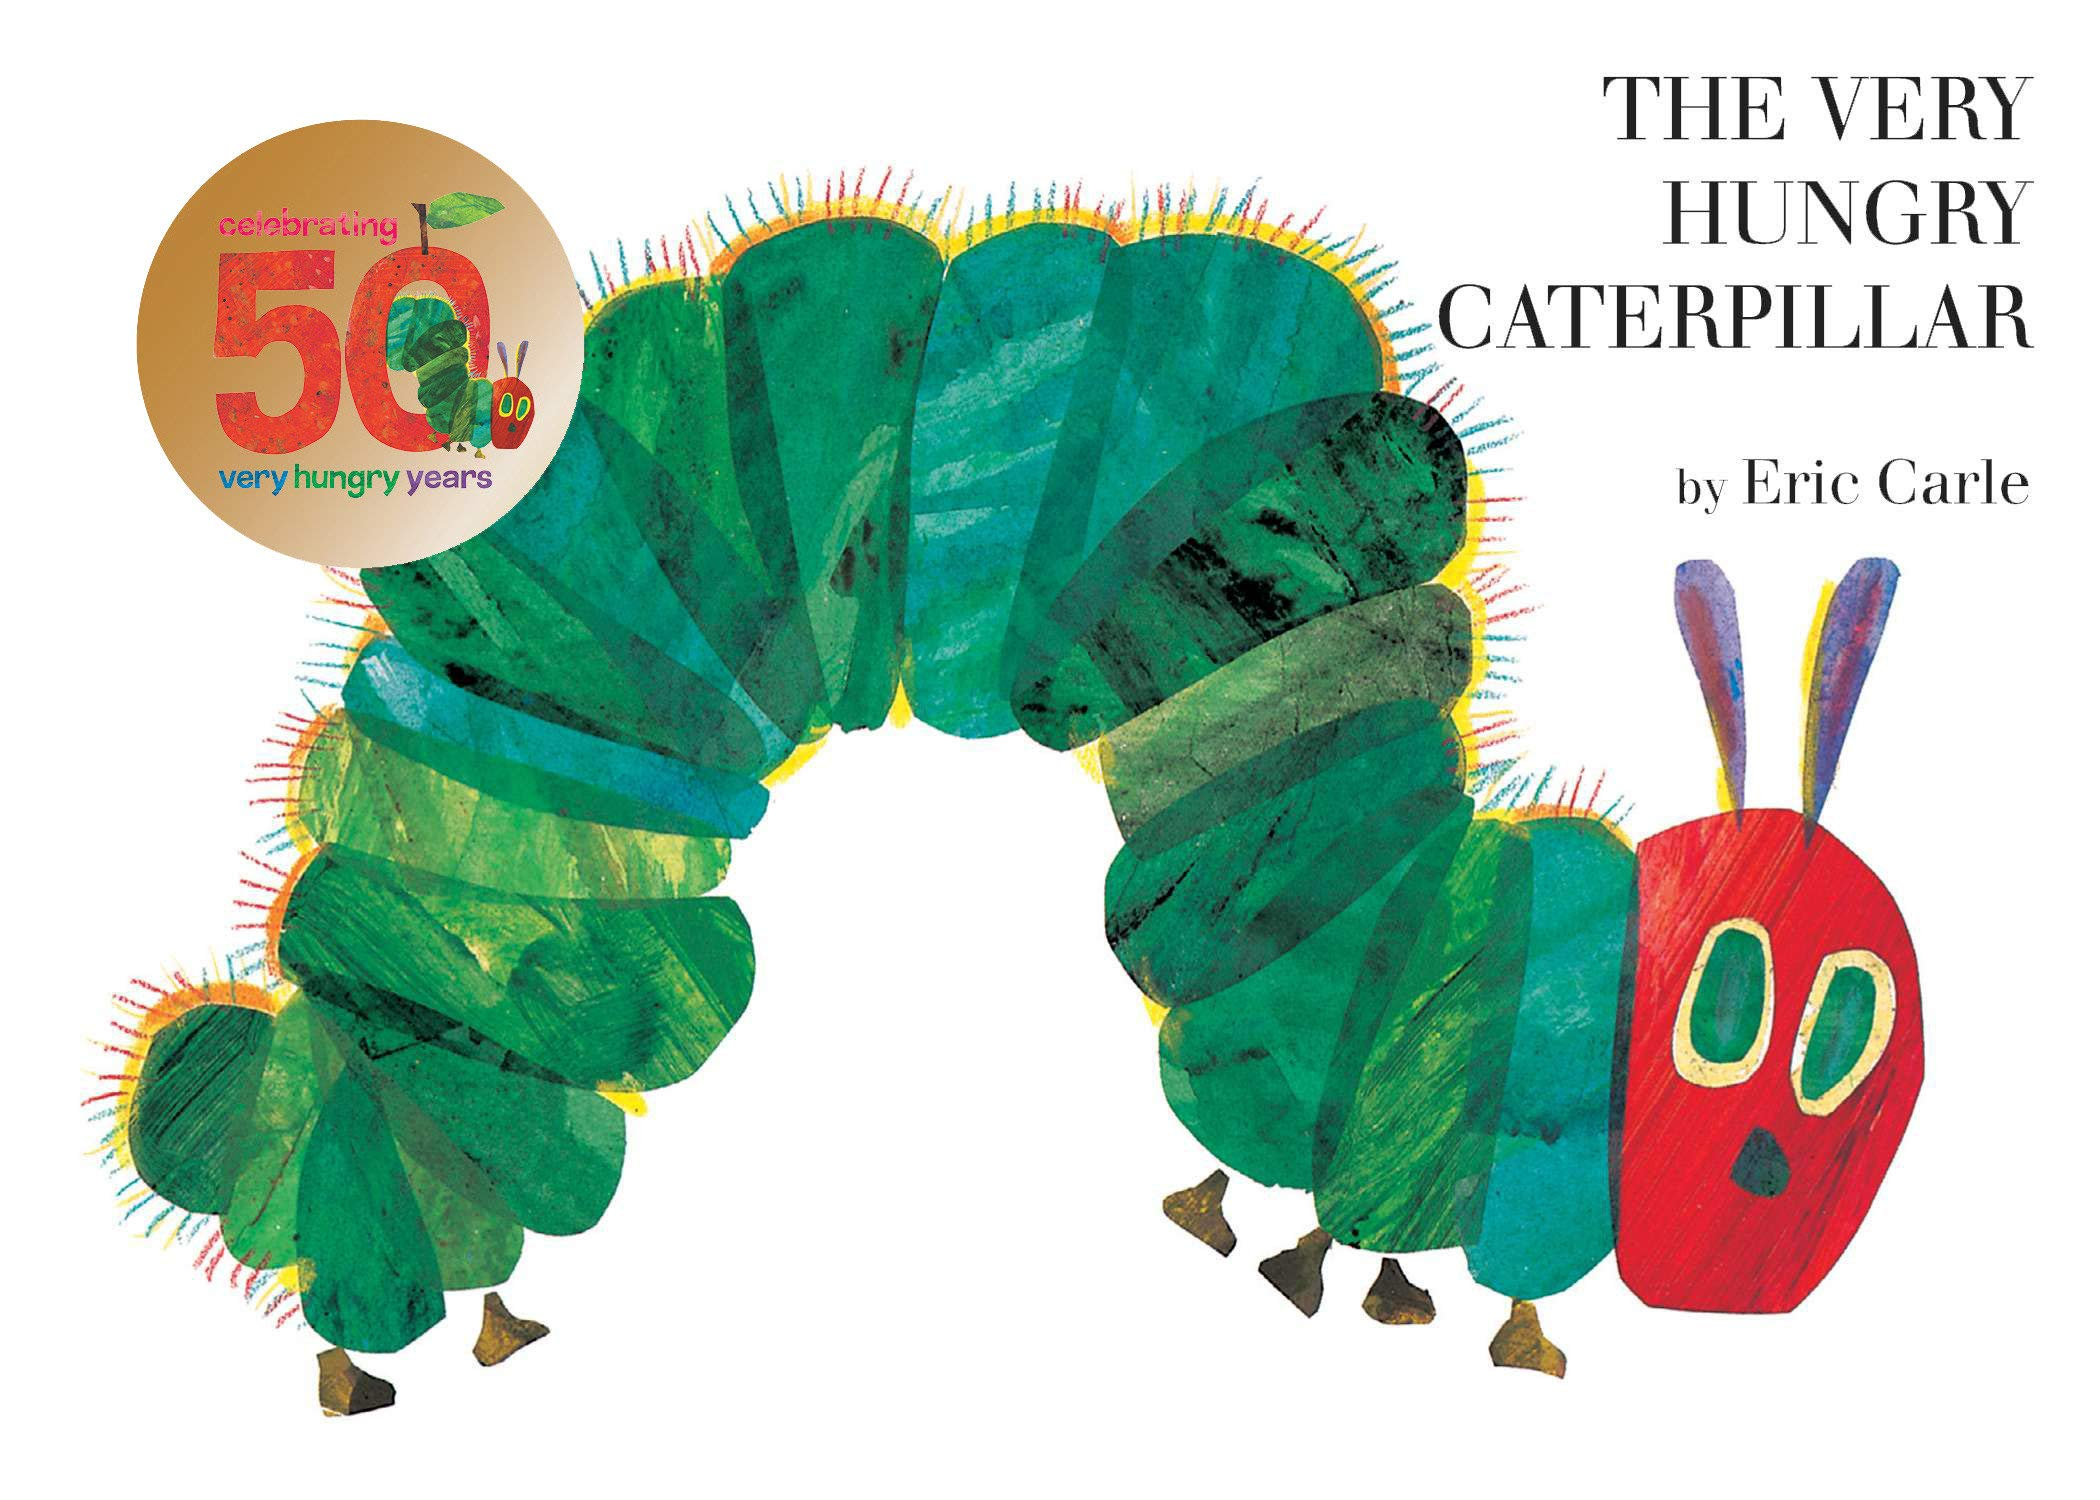 Very Hungry Caterpillar, The